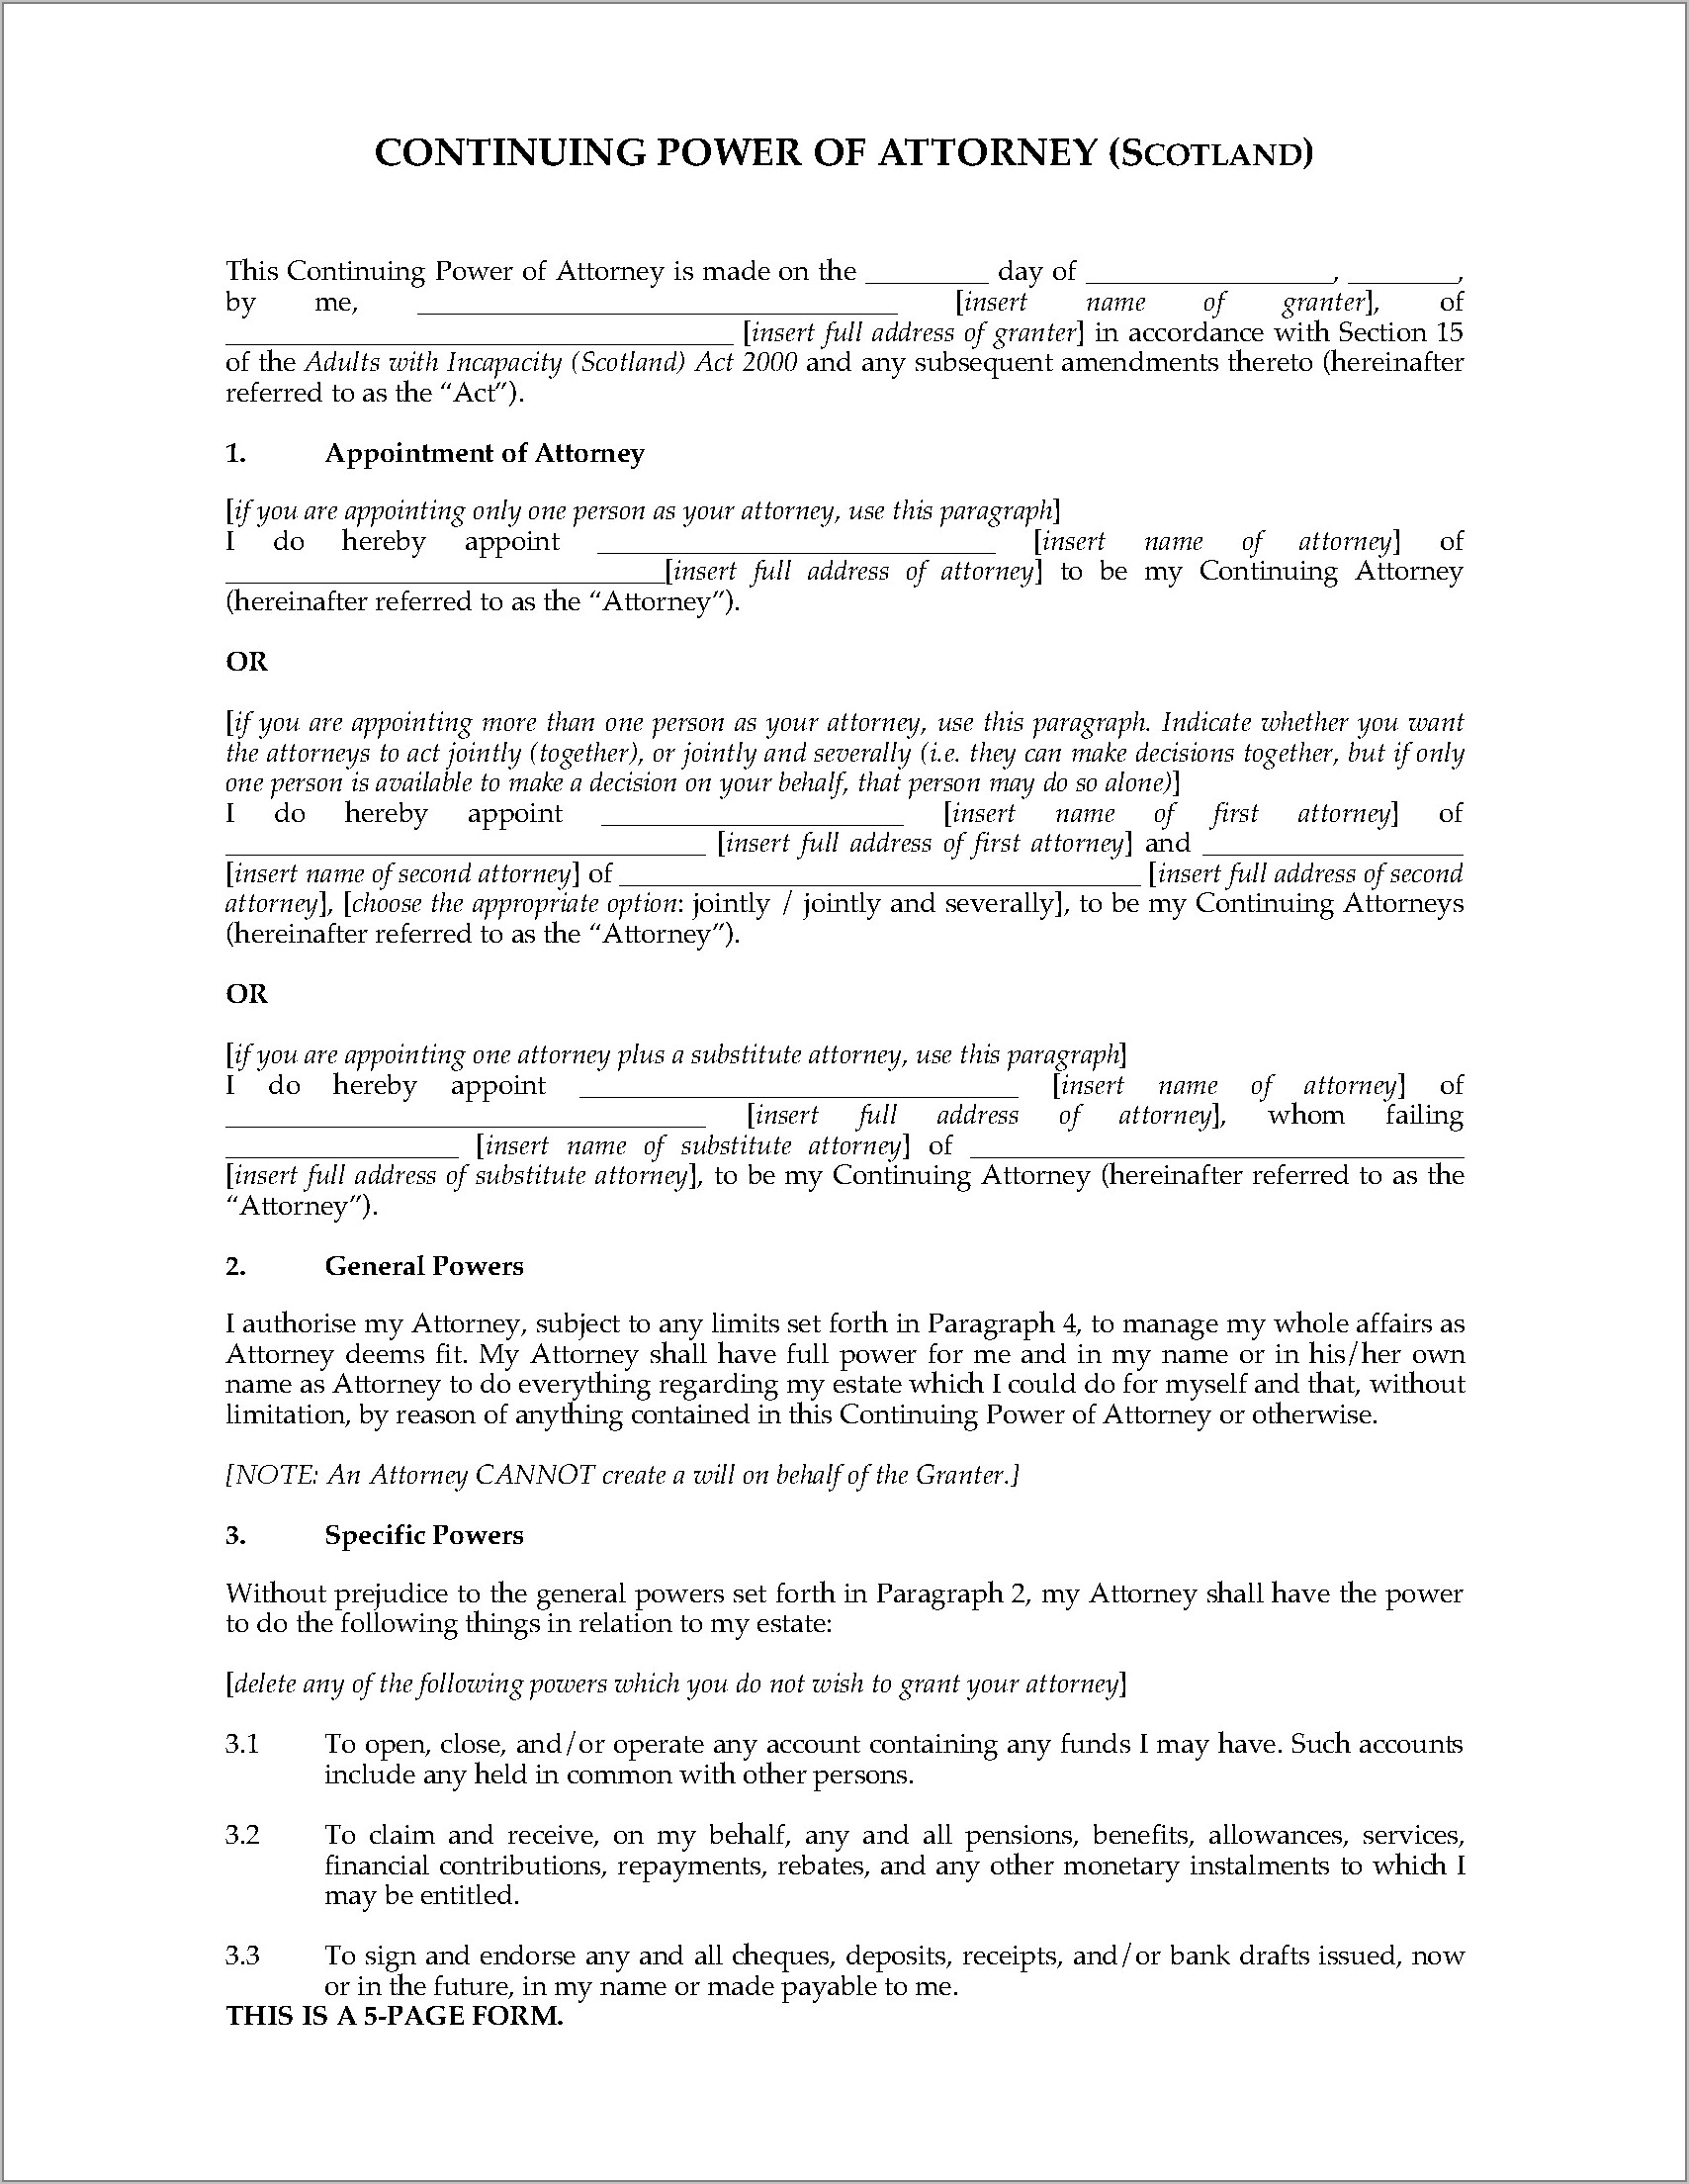 Continuing Power Of Attorney Scotland Template